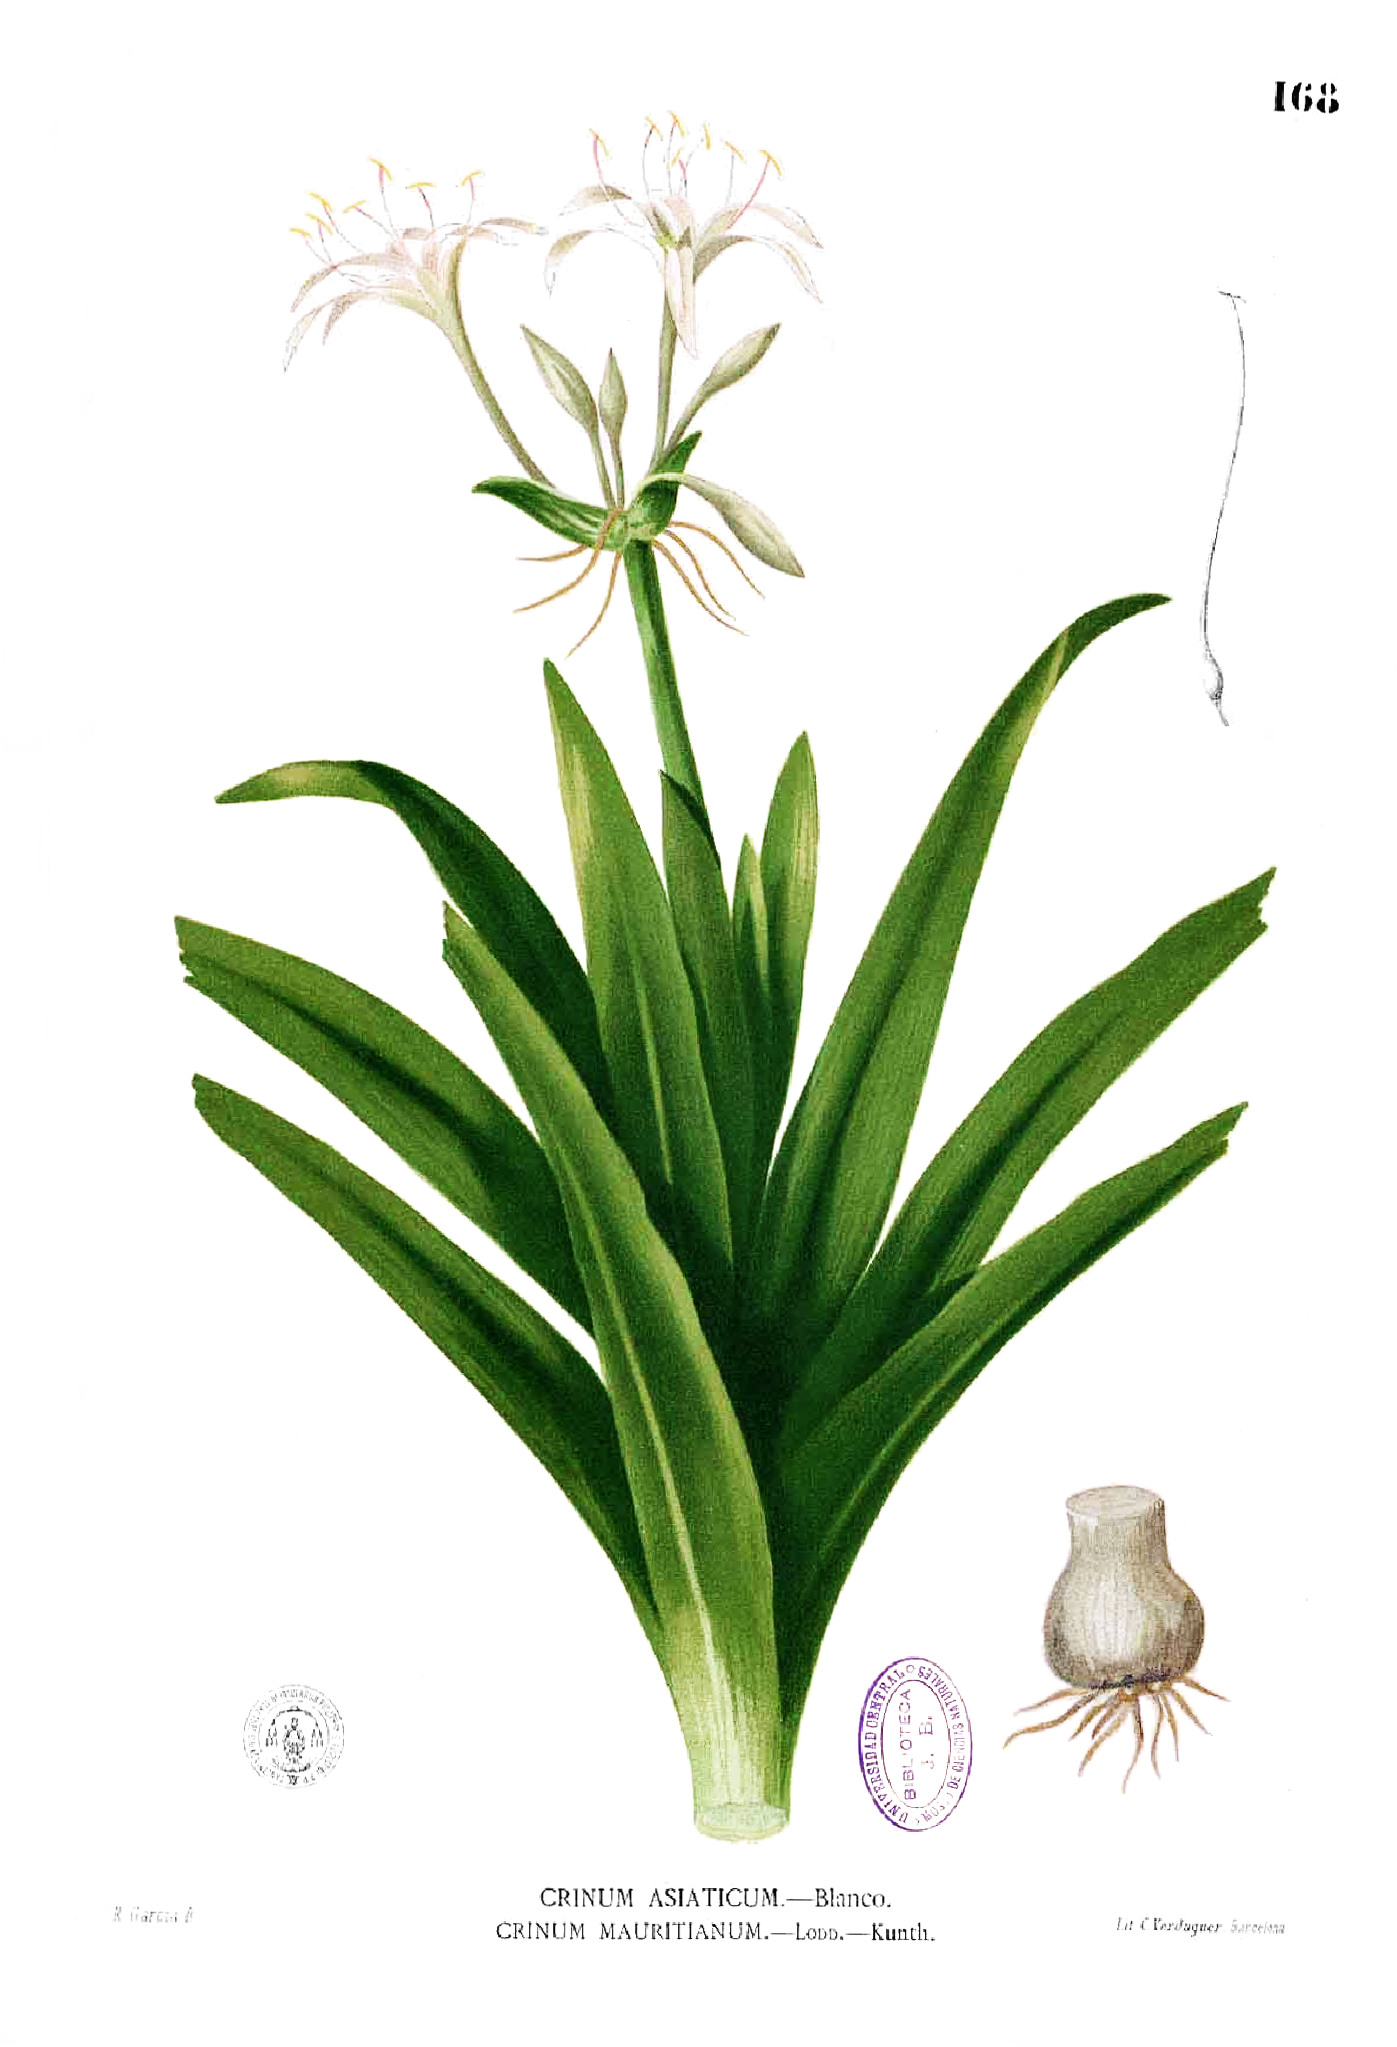 file crinum sp blanco1 168 png wikipedia open source clipart + words open source clip art collection